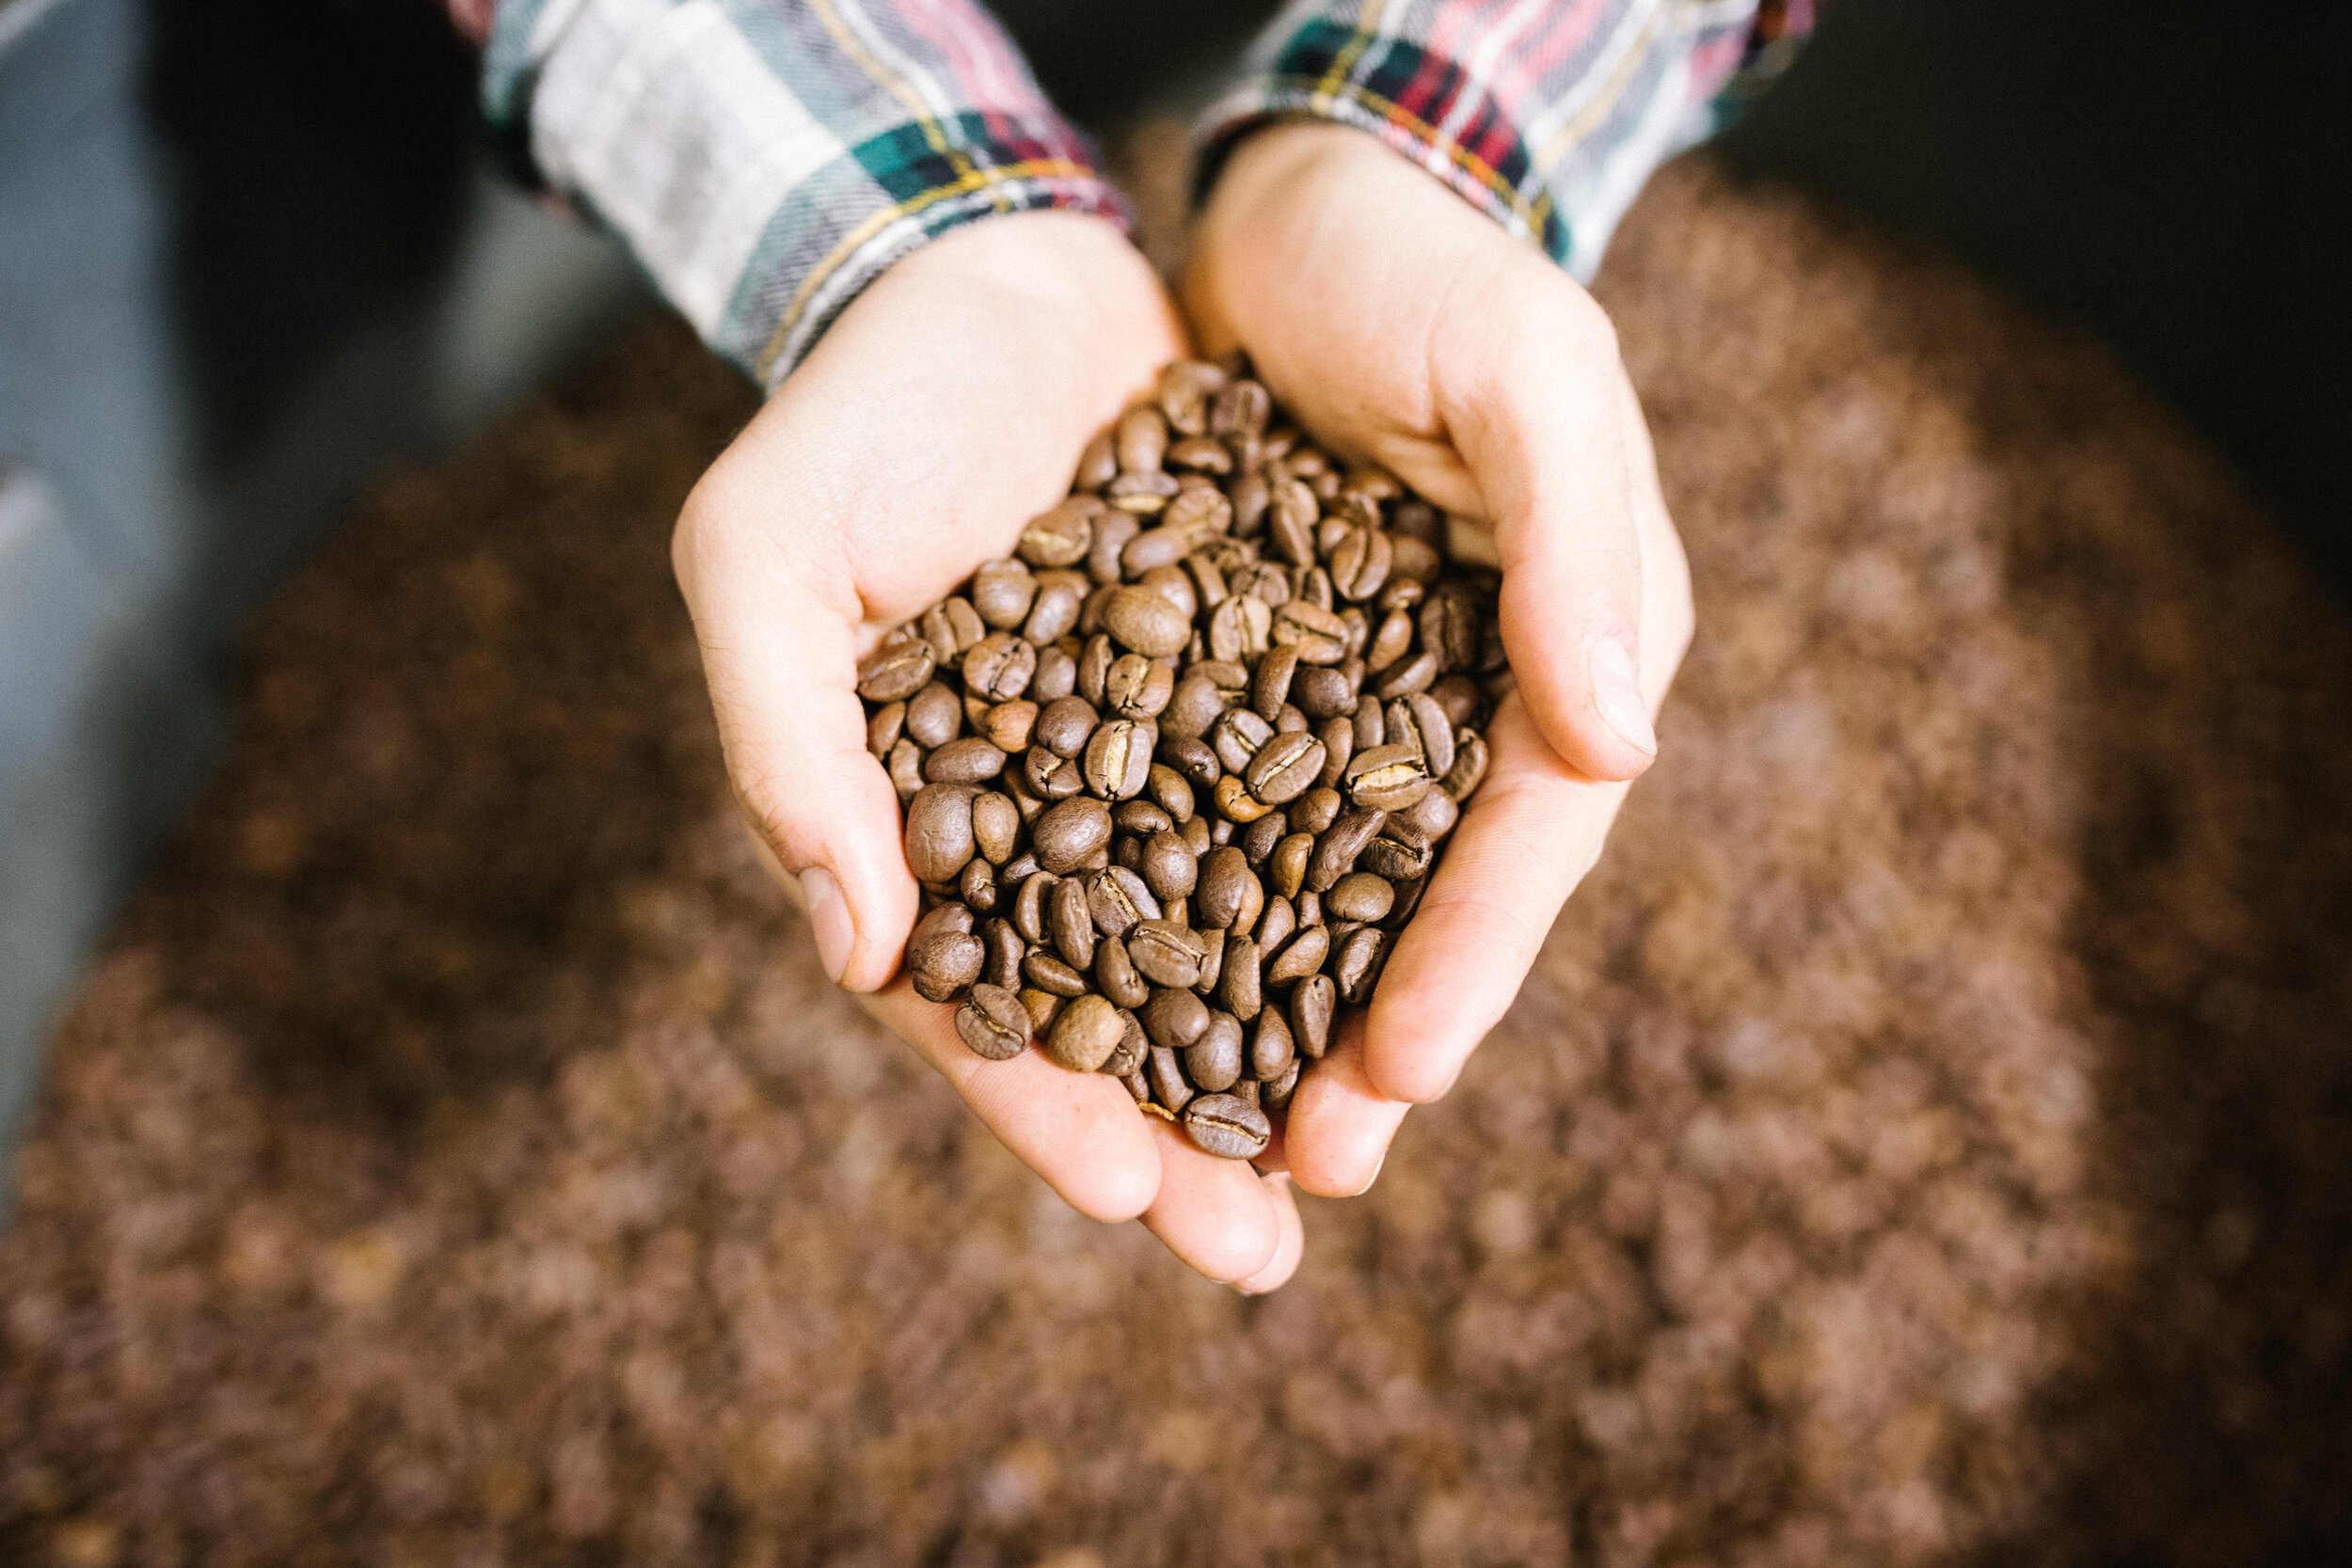 WORKING WITH NATURE - As a food brand, we are committed to bring awareness around the importance of respecting Nature in food production. We respect the seasons to provide the freshest coffee, as every producing country see its harvest time at different moments of the year.